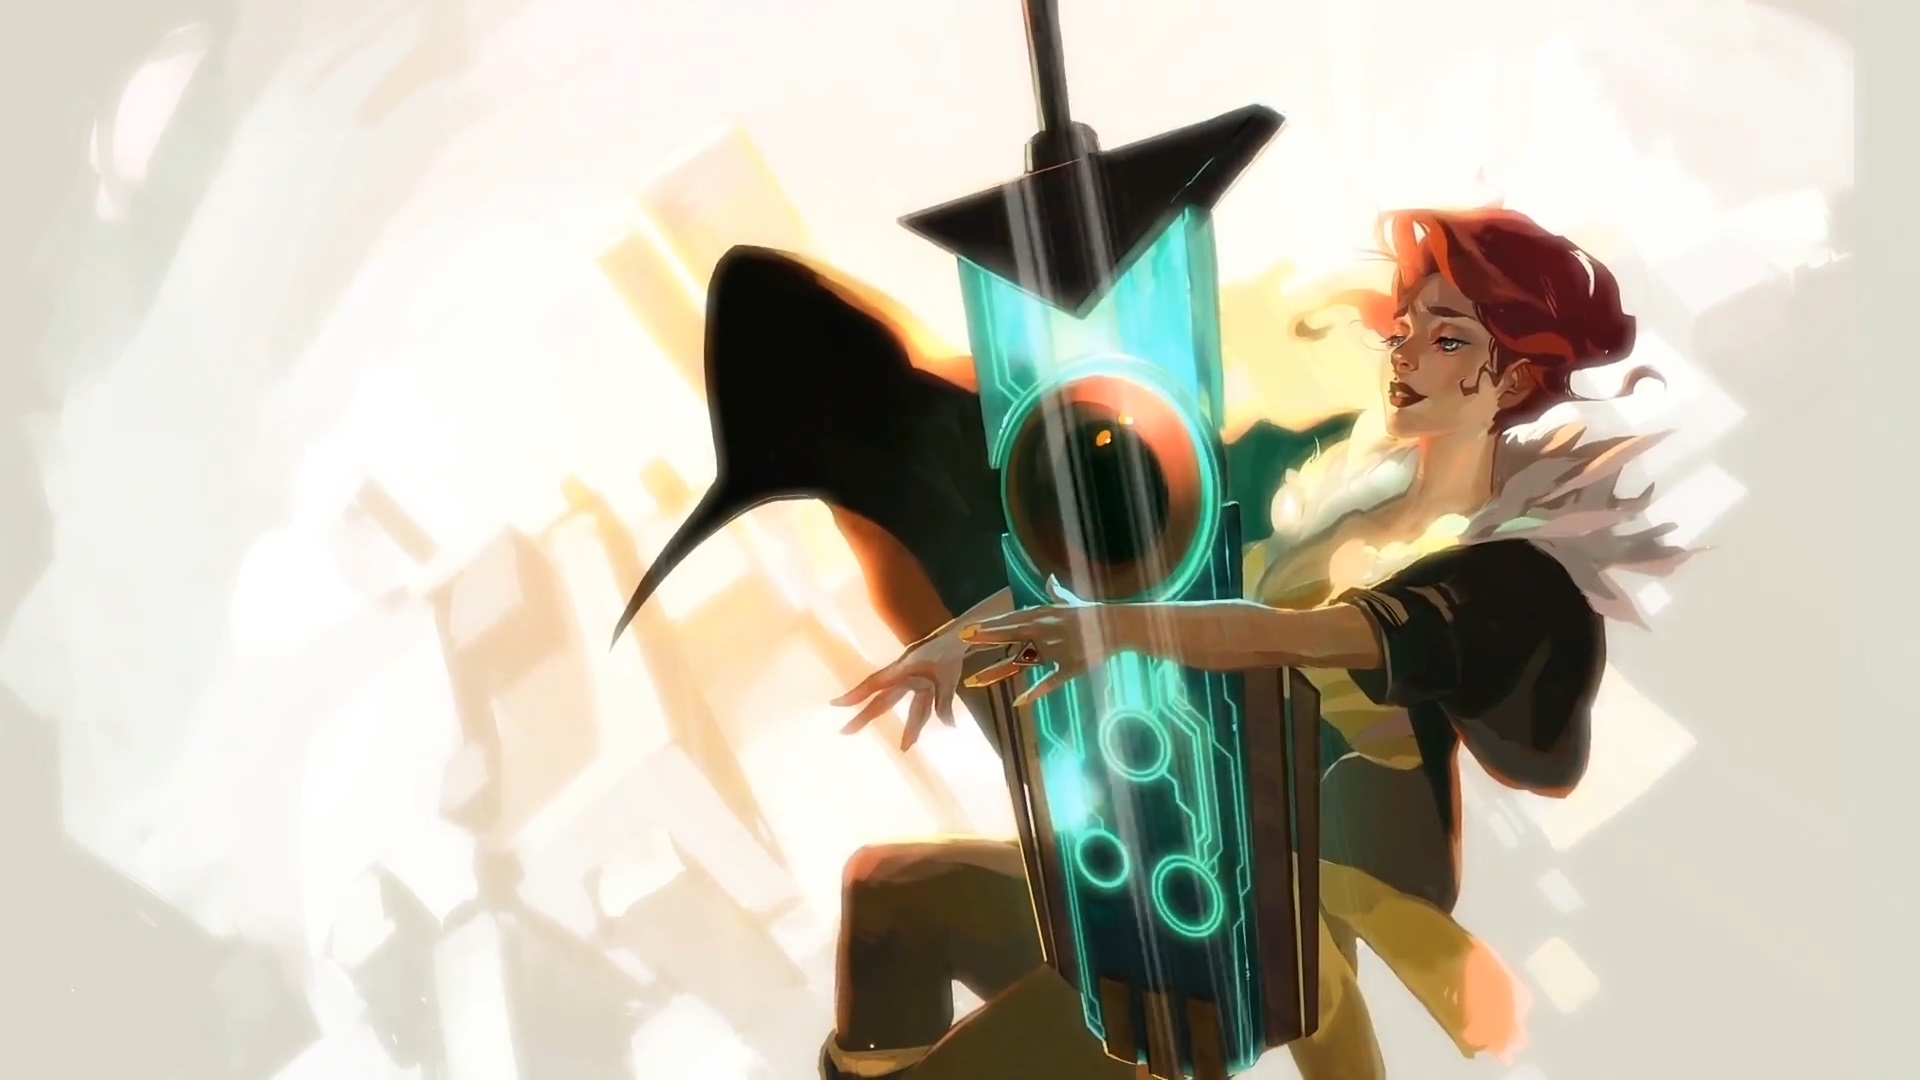 78+ images about Transistor on Pinterest   Wallpapers, Concept art